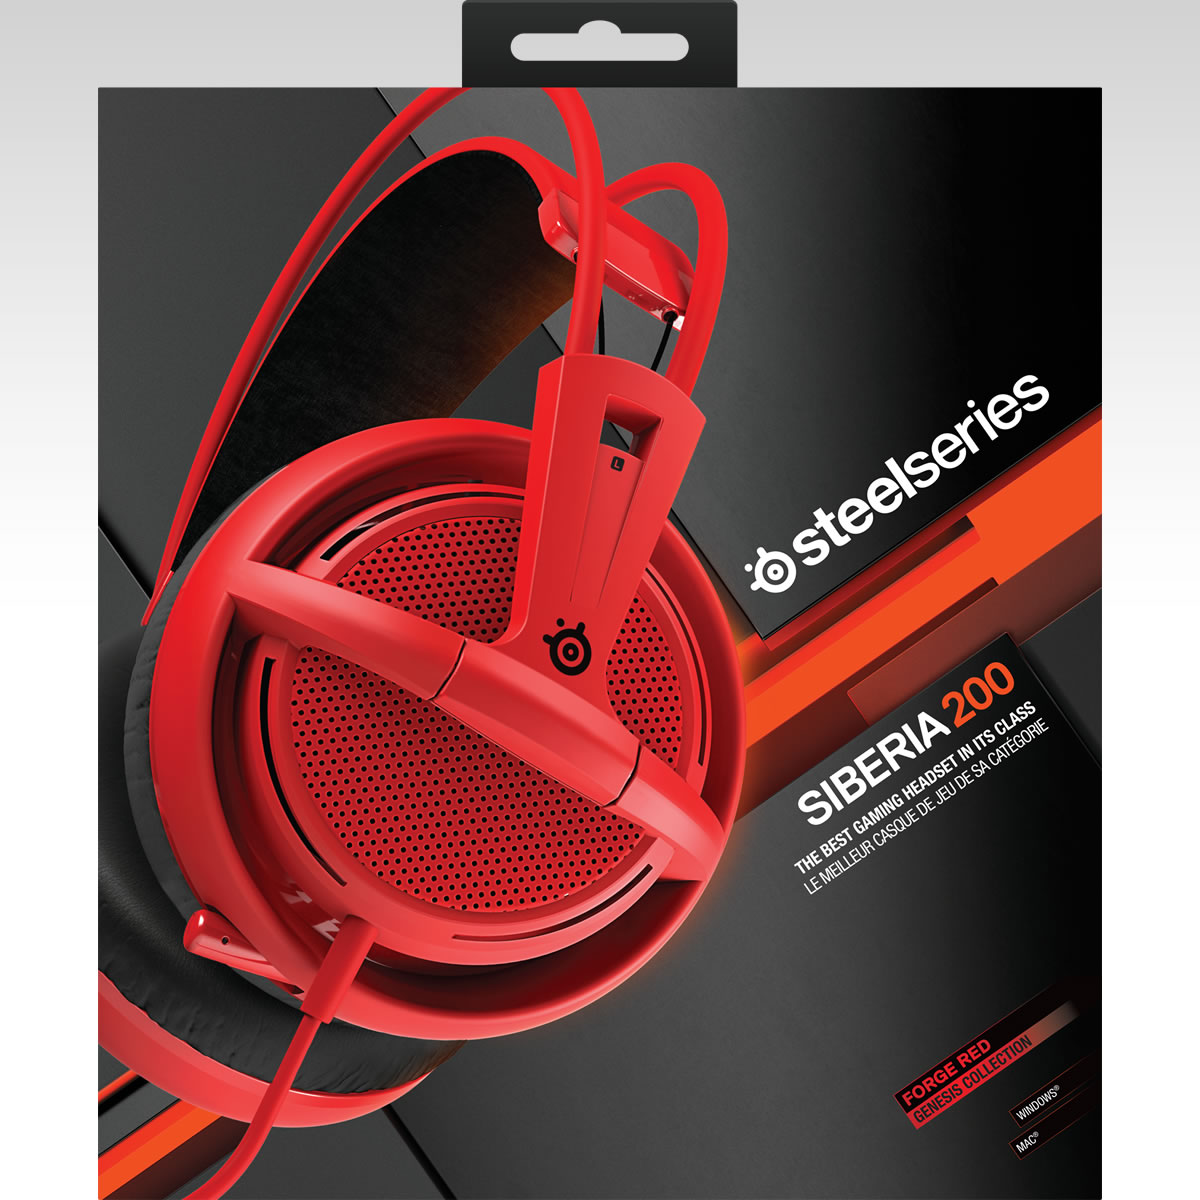 STEELSERIES - HEADSET SIBERIA 200 FORGED RED 51135 (PC, Mac, PS4, Mobile)